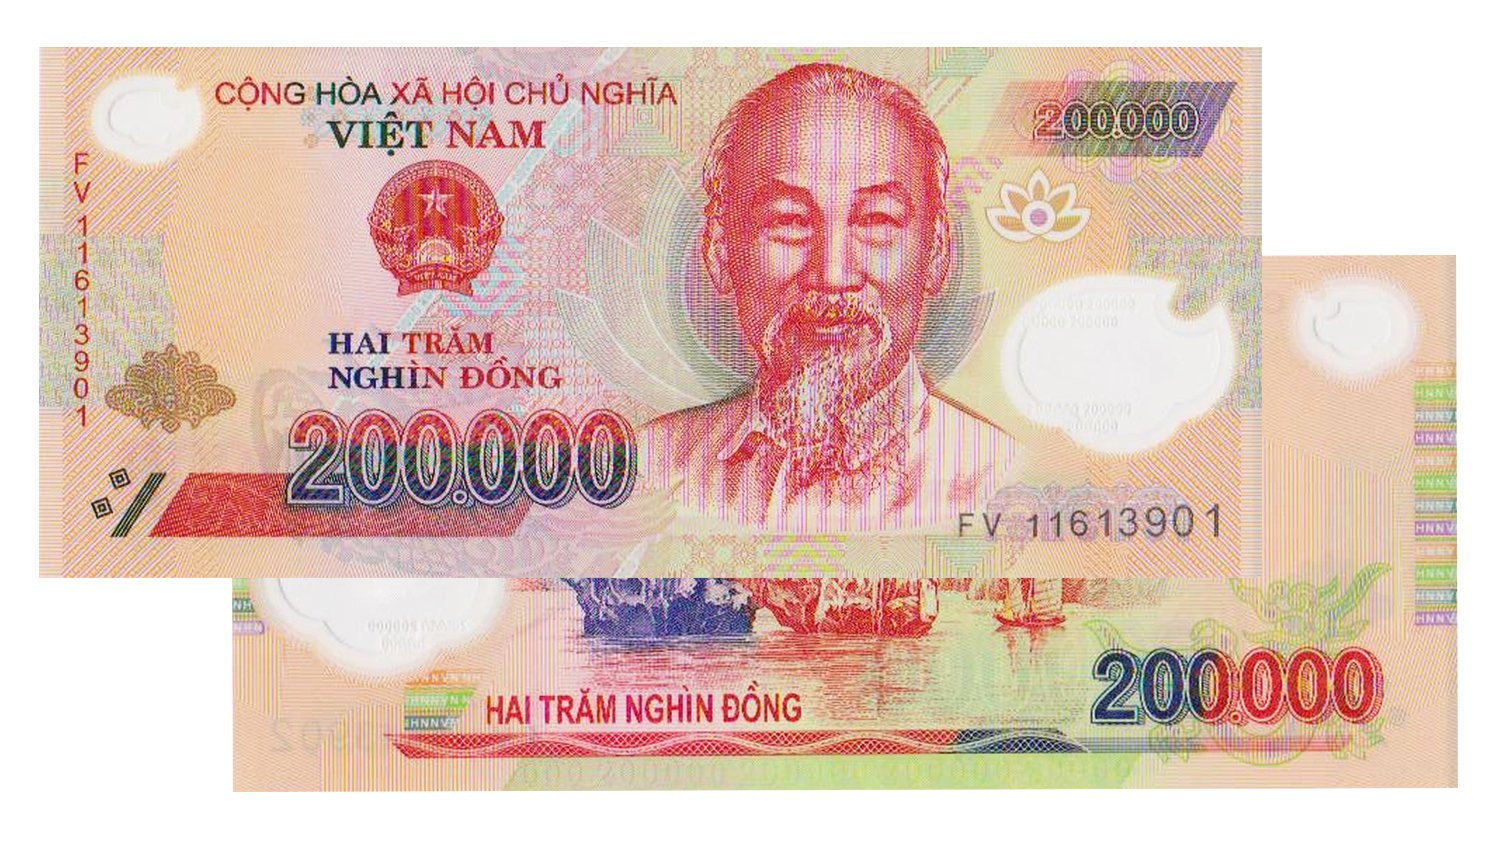 200,000 Vietnamese Dong - Circulated Note Worldwide Shipping: Amazon